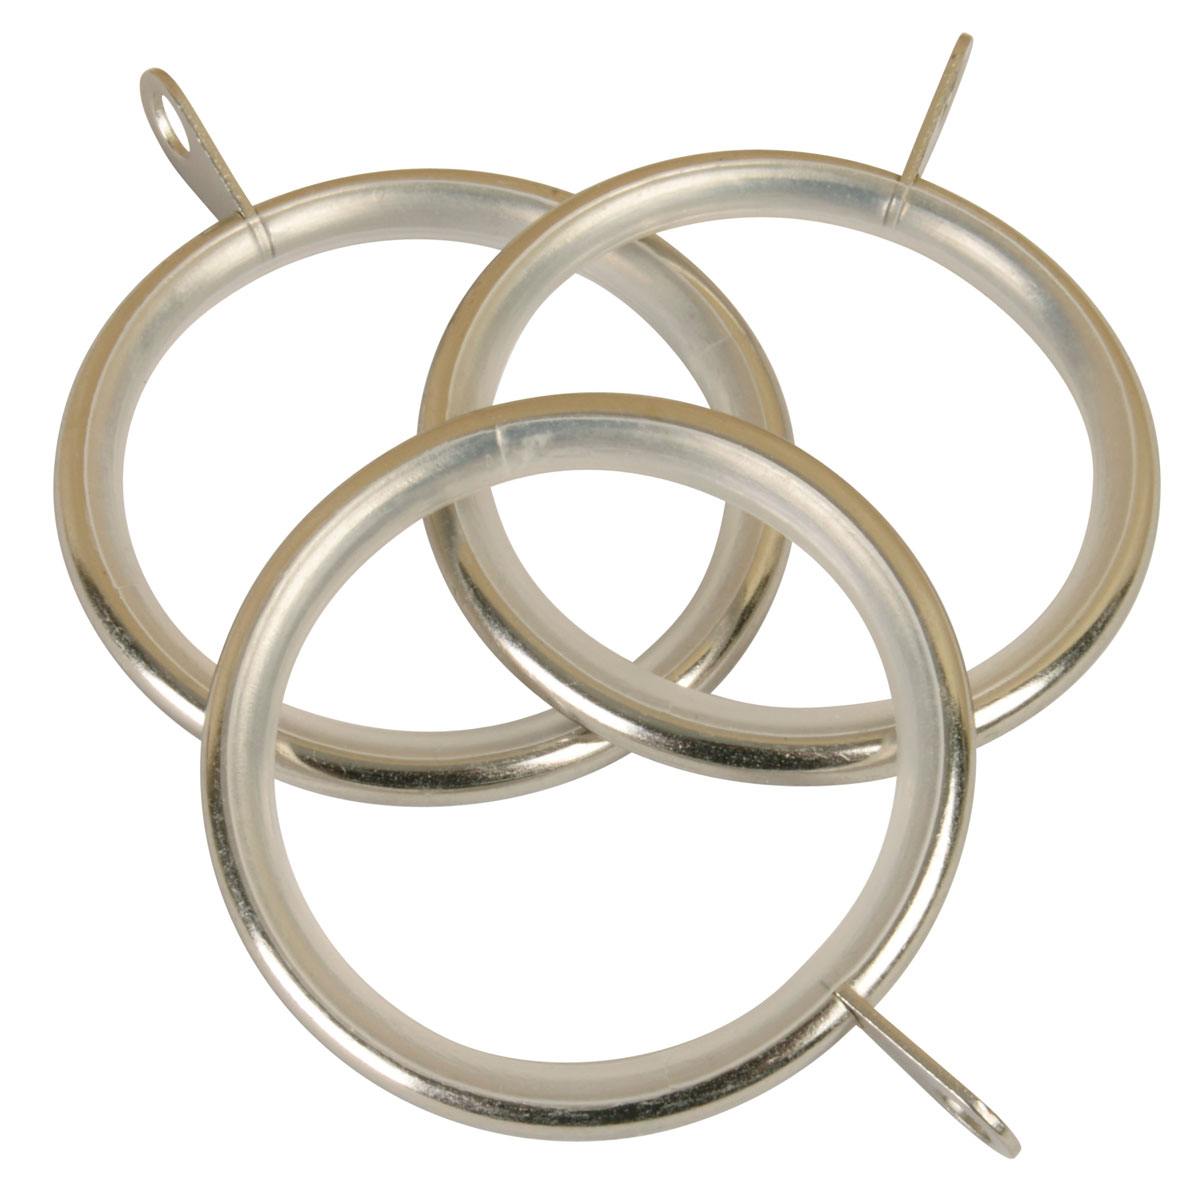 Stockists of Satin Silver Ball 28mm Curtain Rings